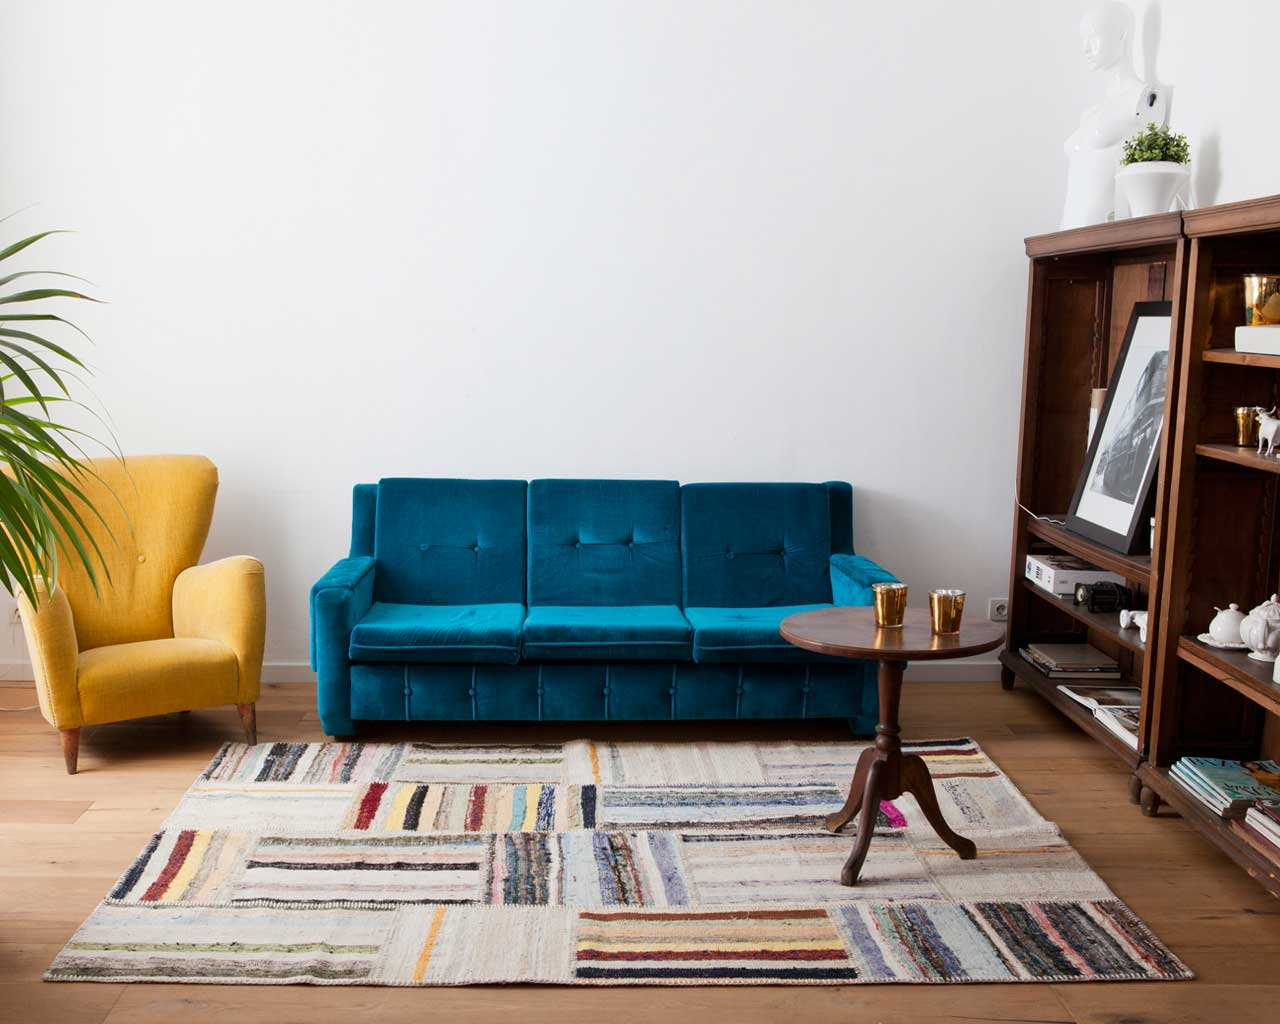 caputarea rug blue details yellow chair sukhi